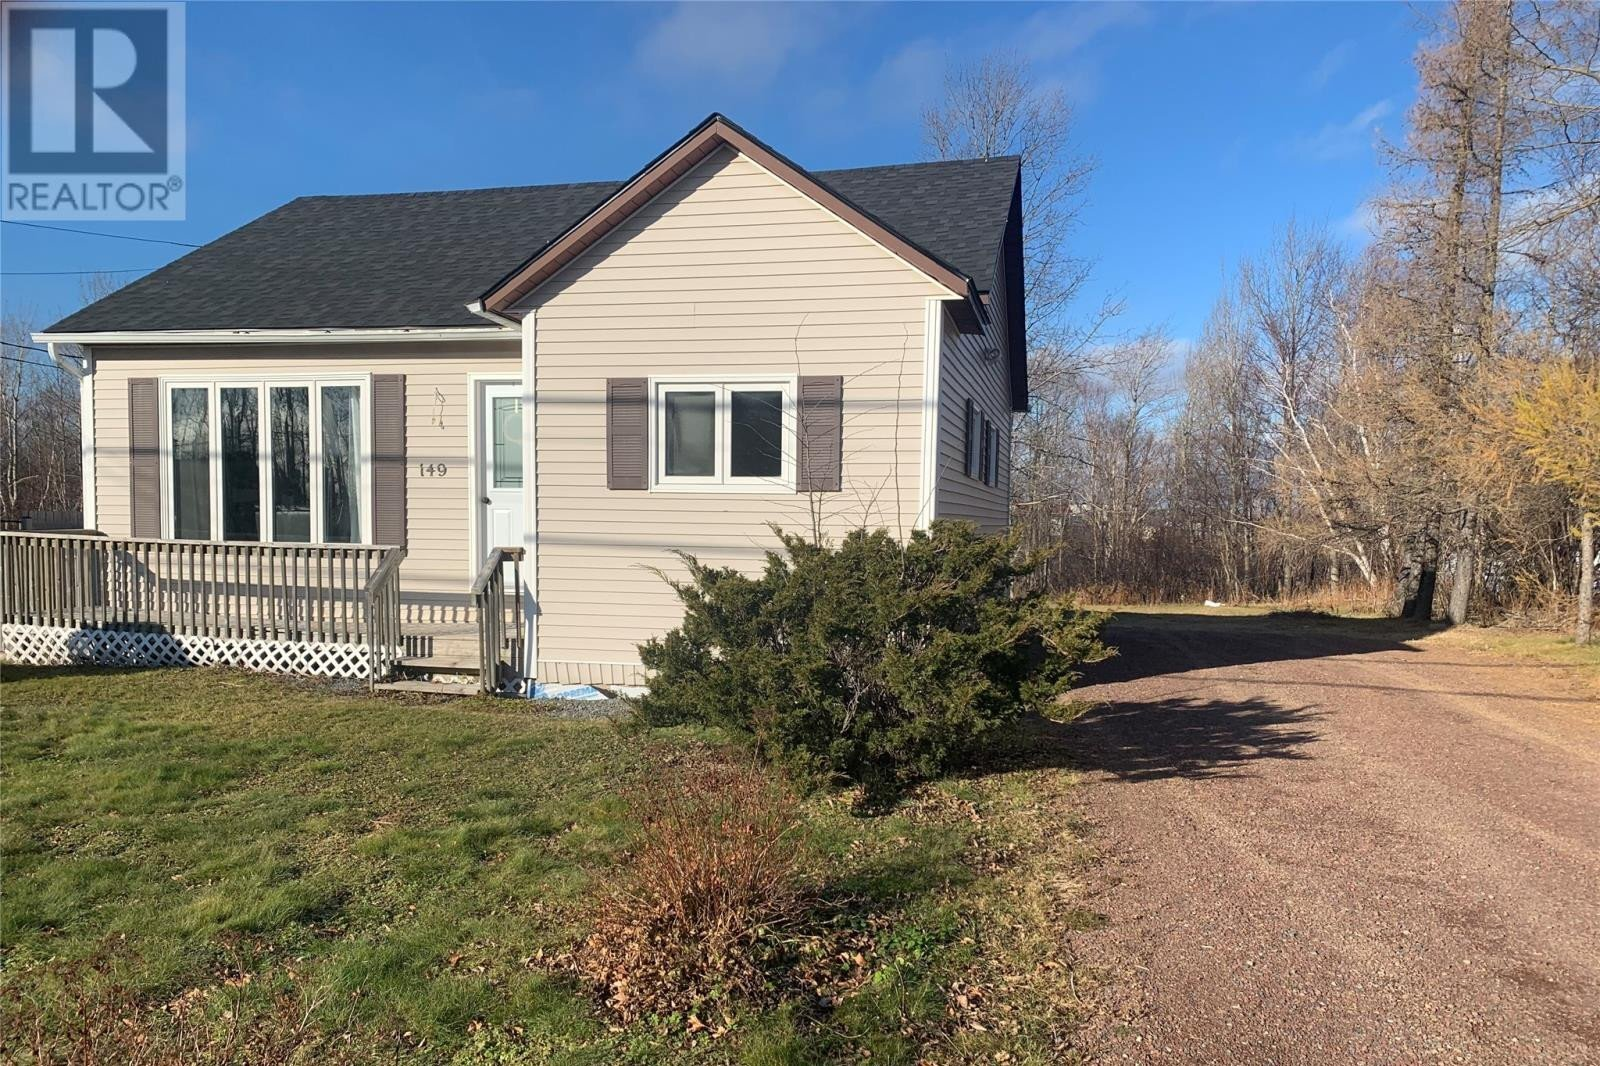 House for sale at 149 Grenfell Ht Grand Falls- Windsor Newfoundland - MLS: 1223712